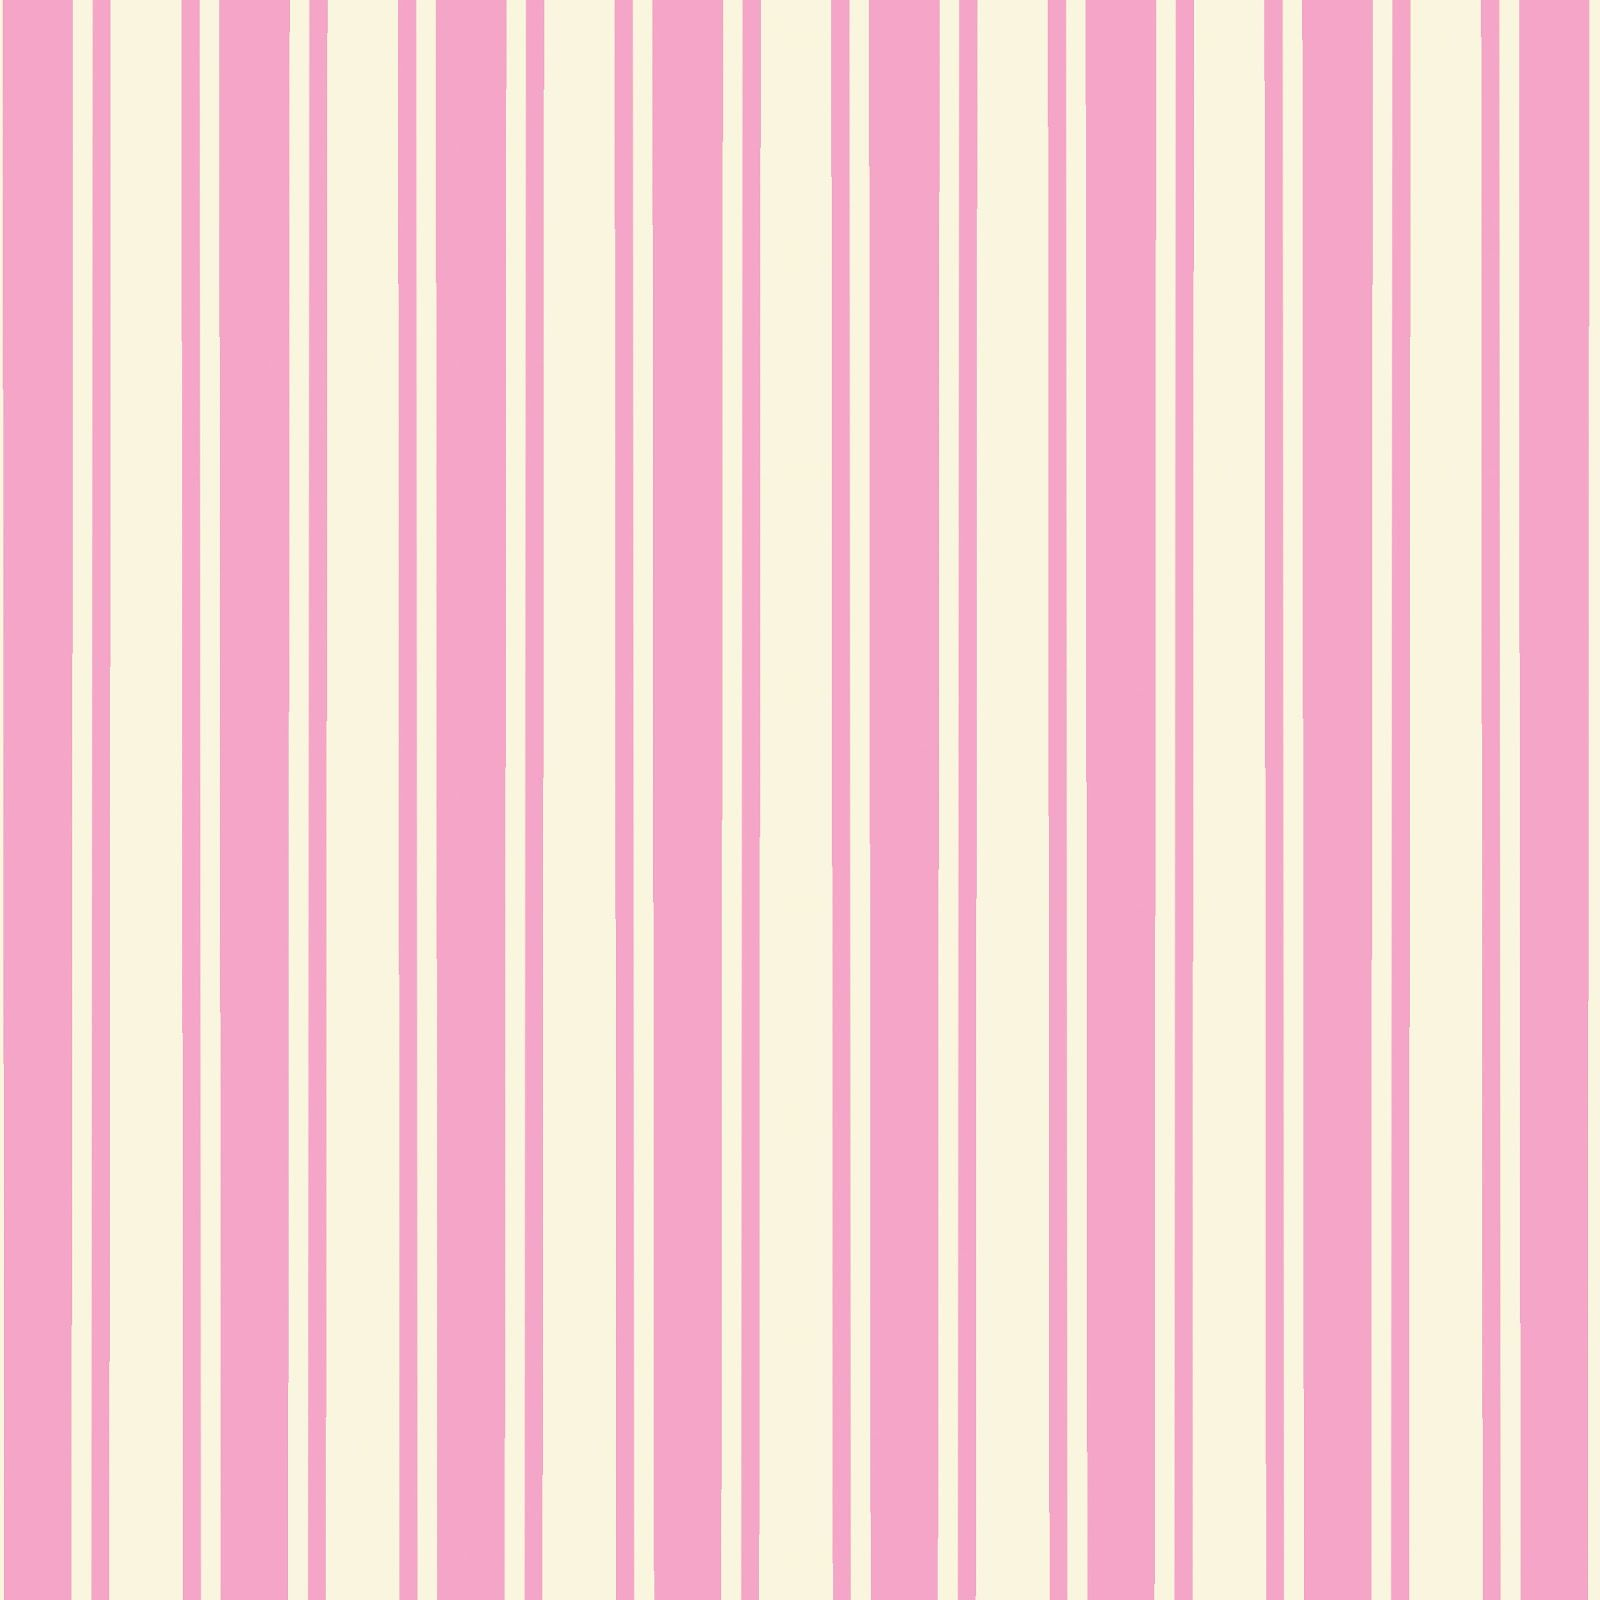 Scrapbook paper as wallpaper - Images Of Free Vintage Digital St Scrapbook Paper Pink Wallpaper